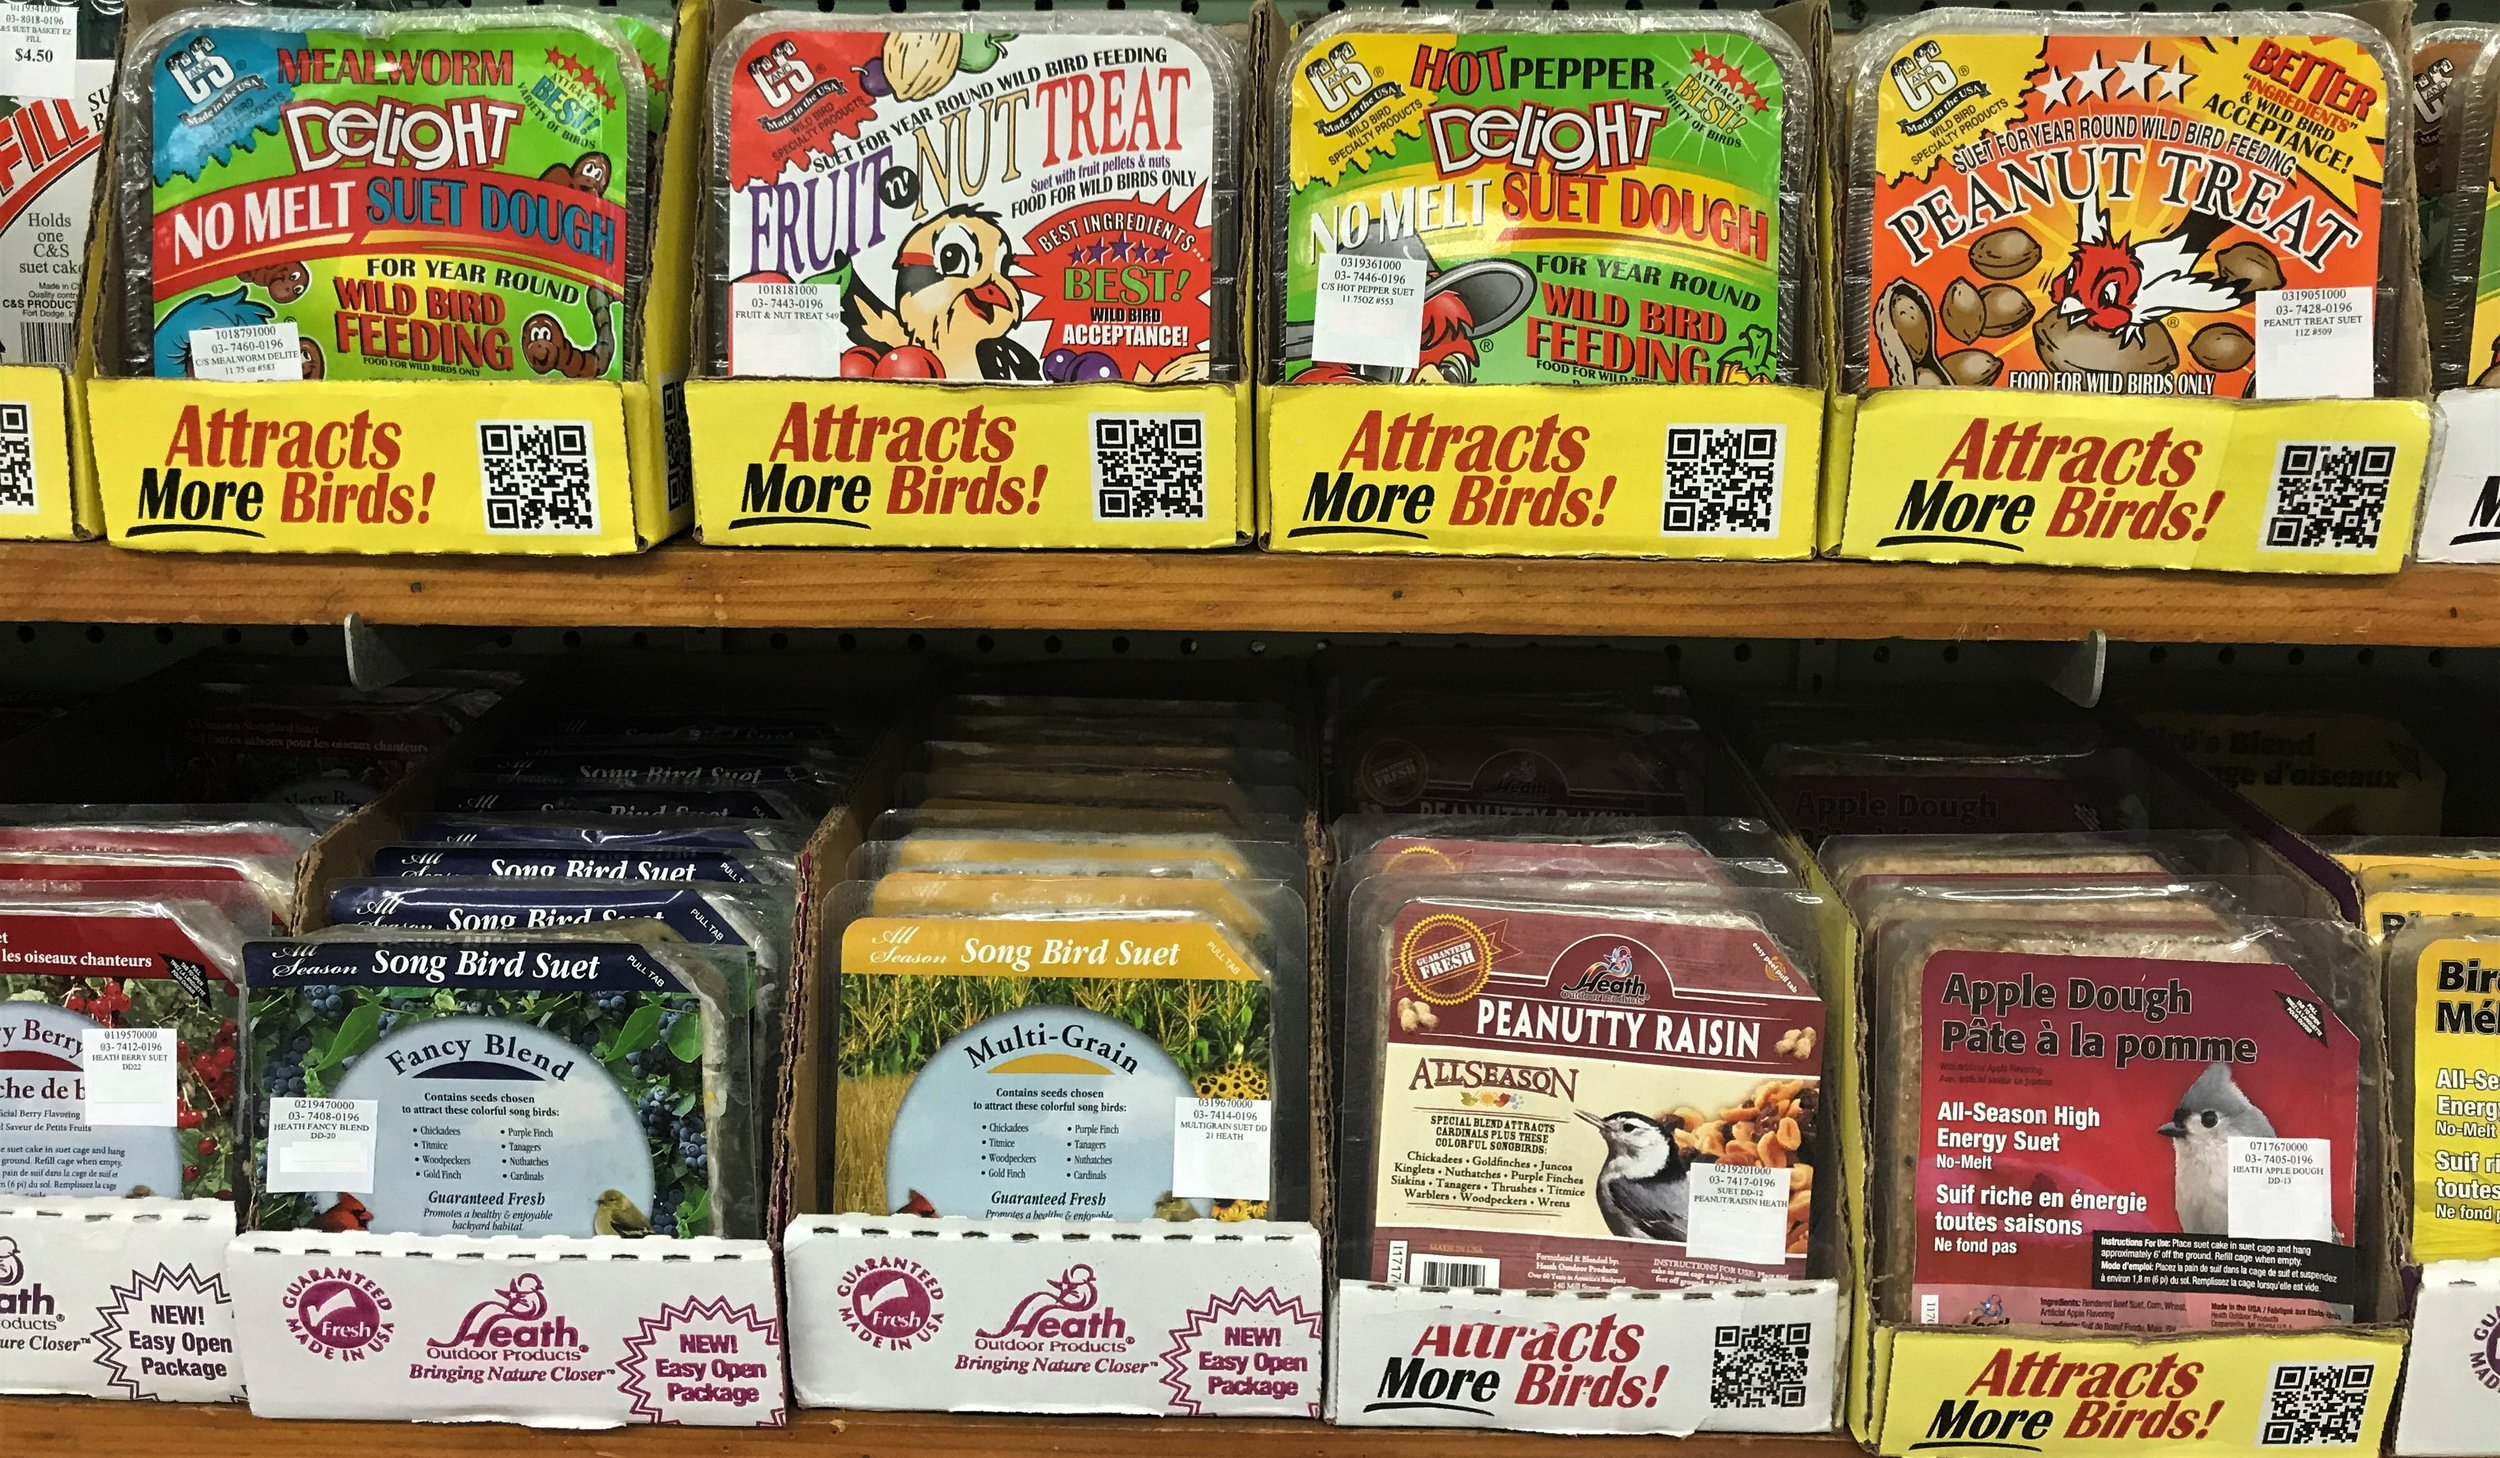 We also carry C&S suet and Pine Tree Farms Suet!